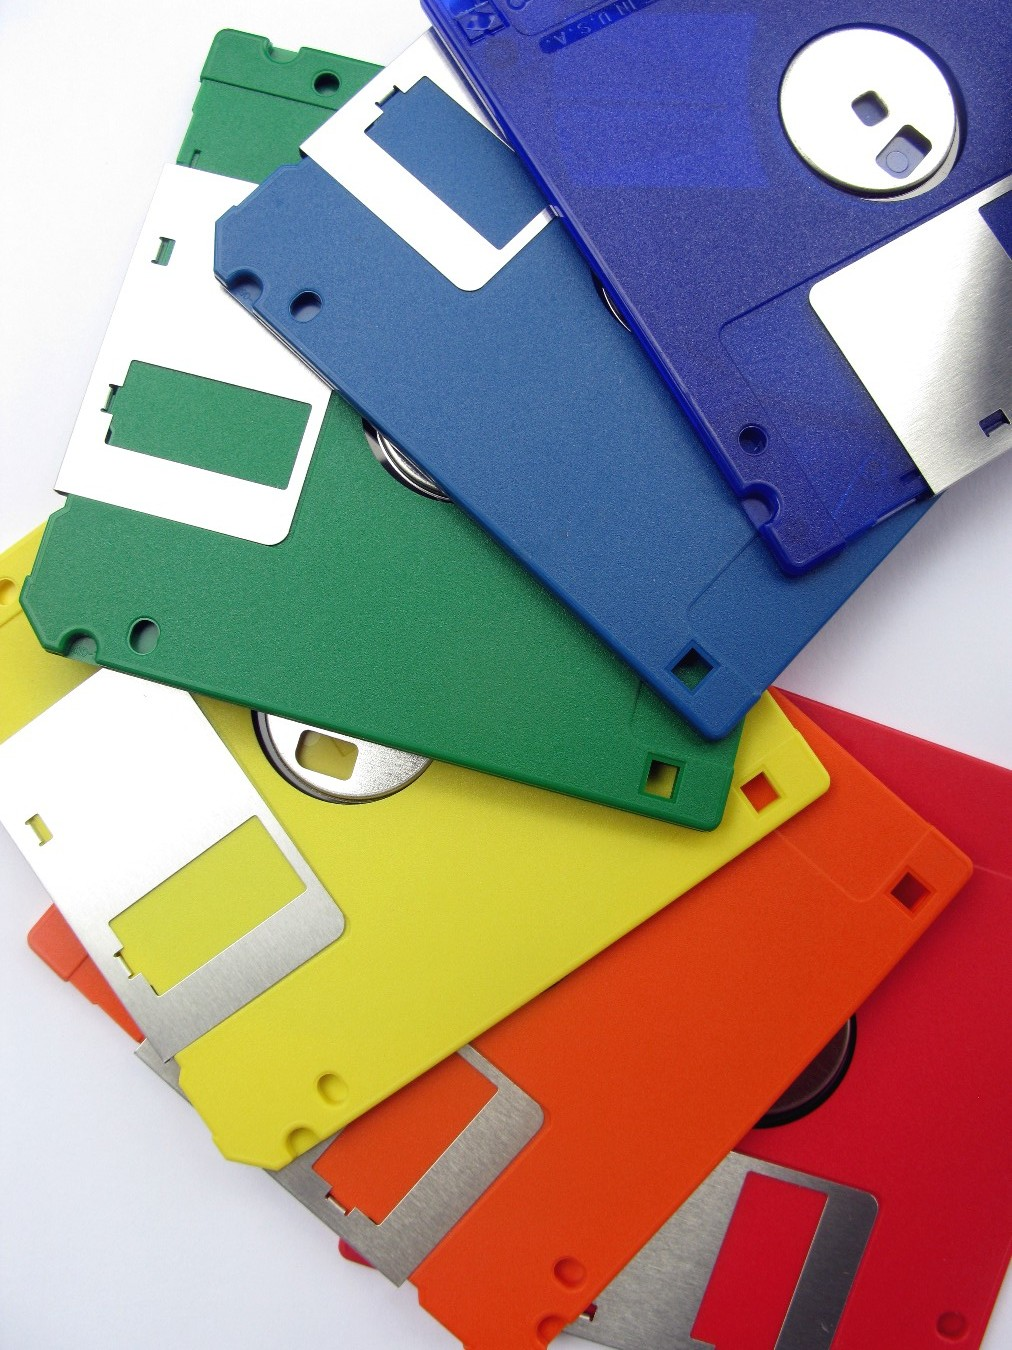 Somewhere, there is a graveyard of floppy disks